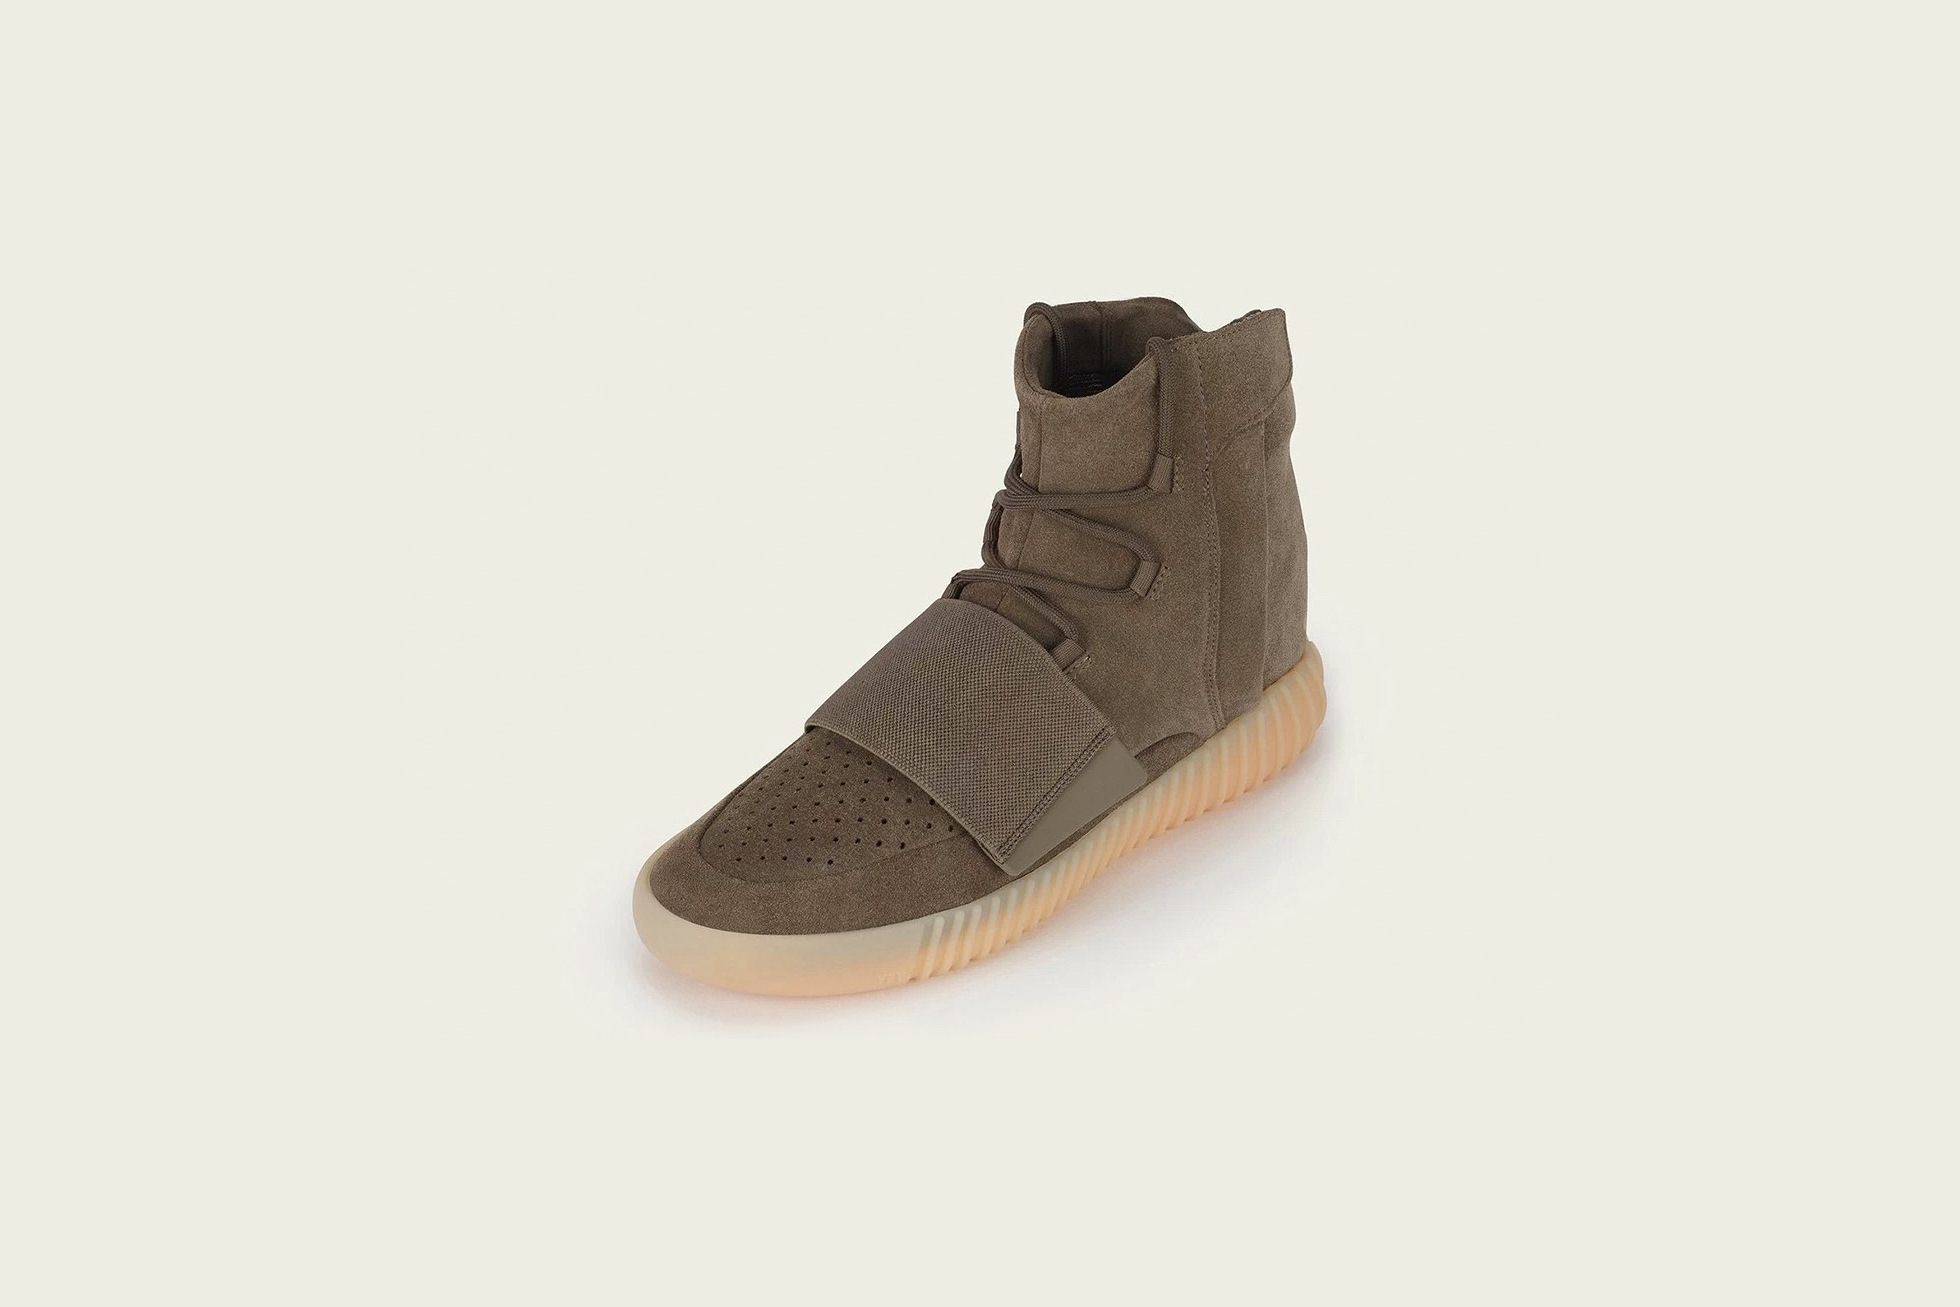 adidas Yeezy Boost 750 Brown 2